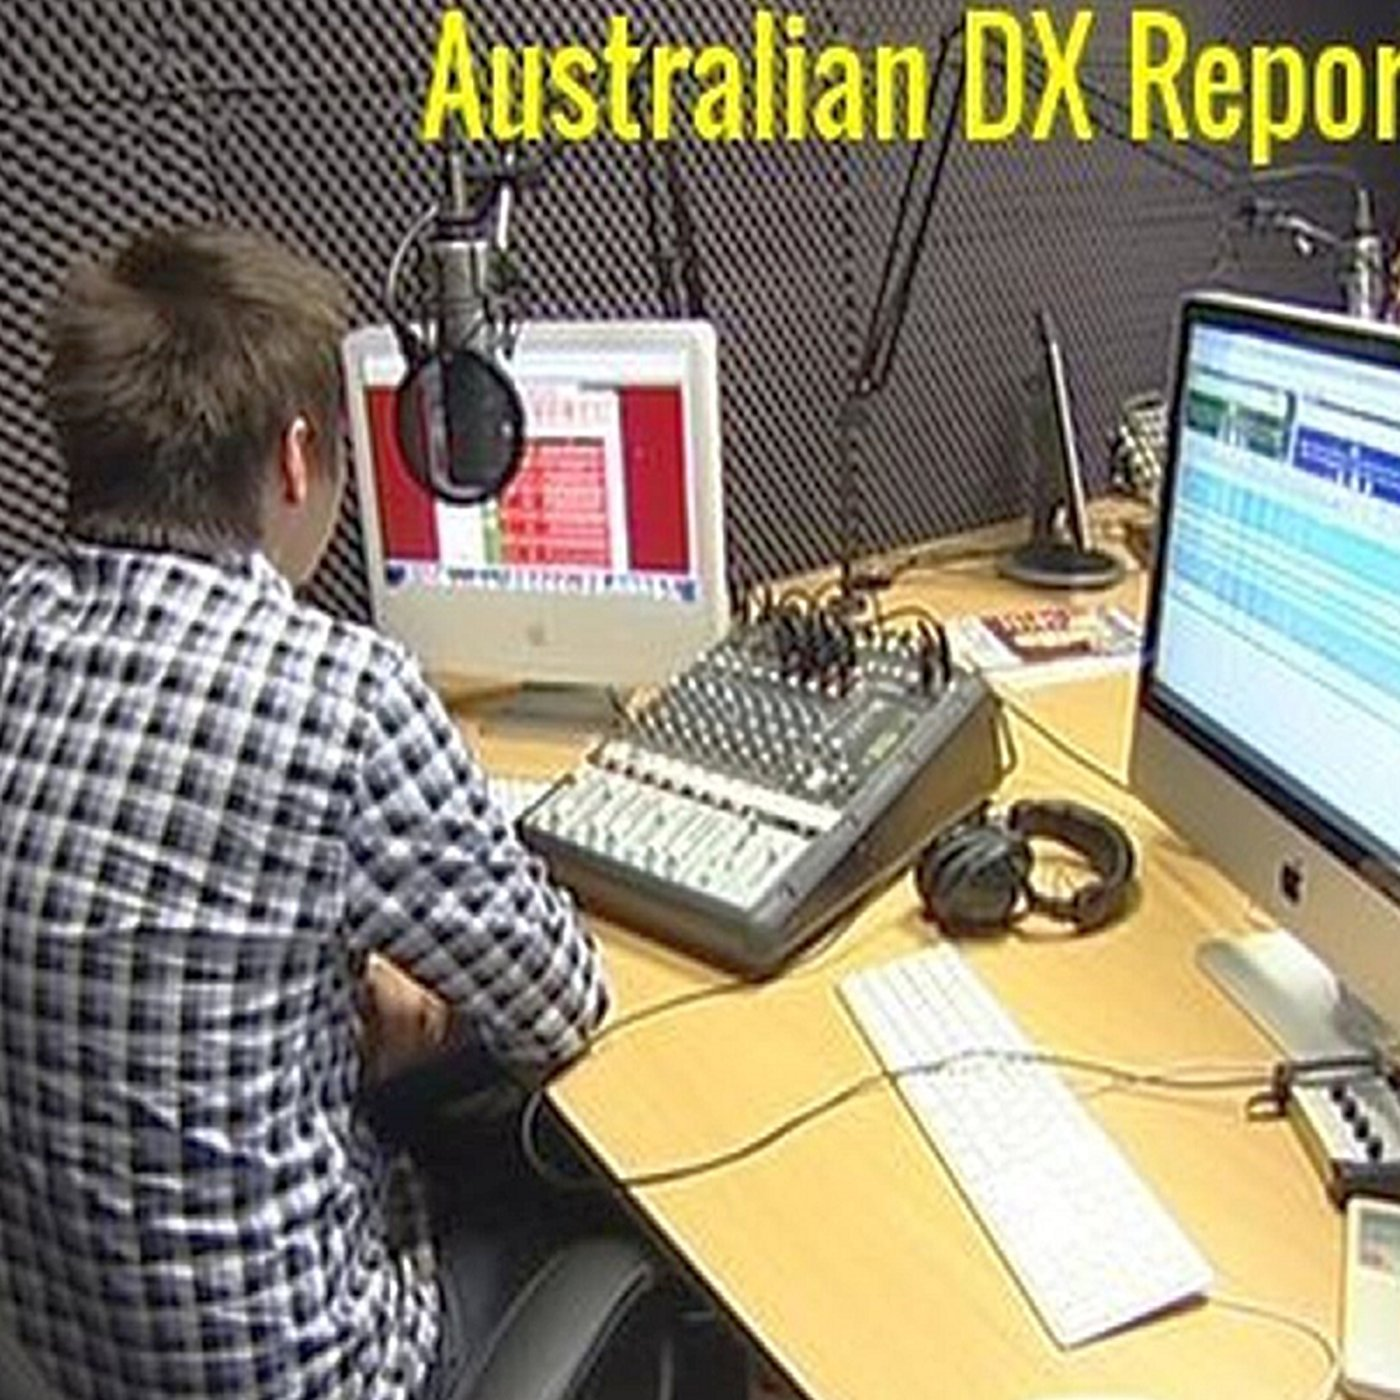 Australian DX Report - Studio